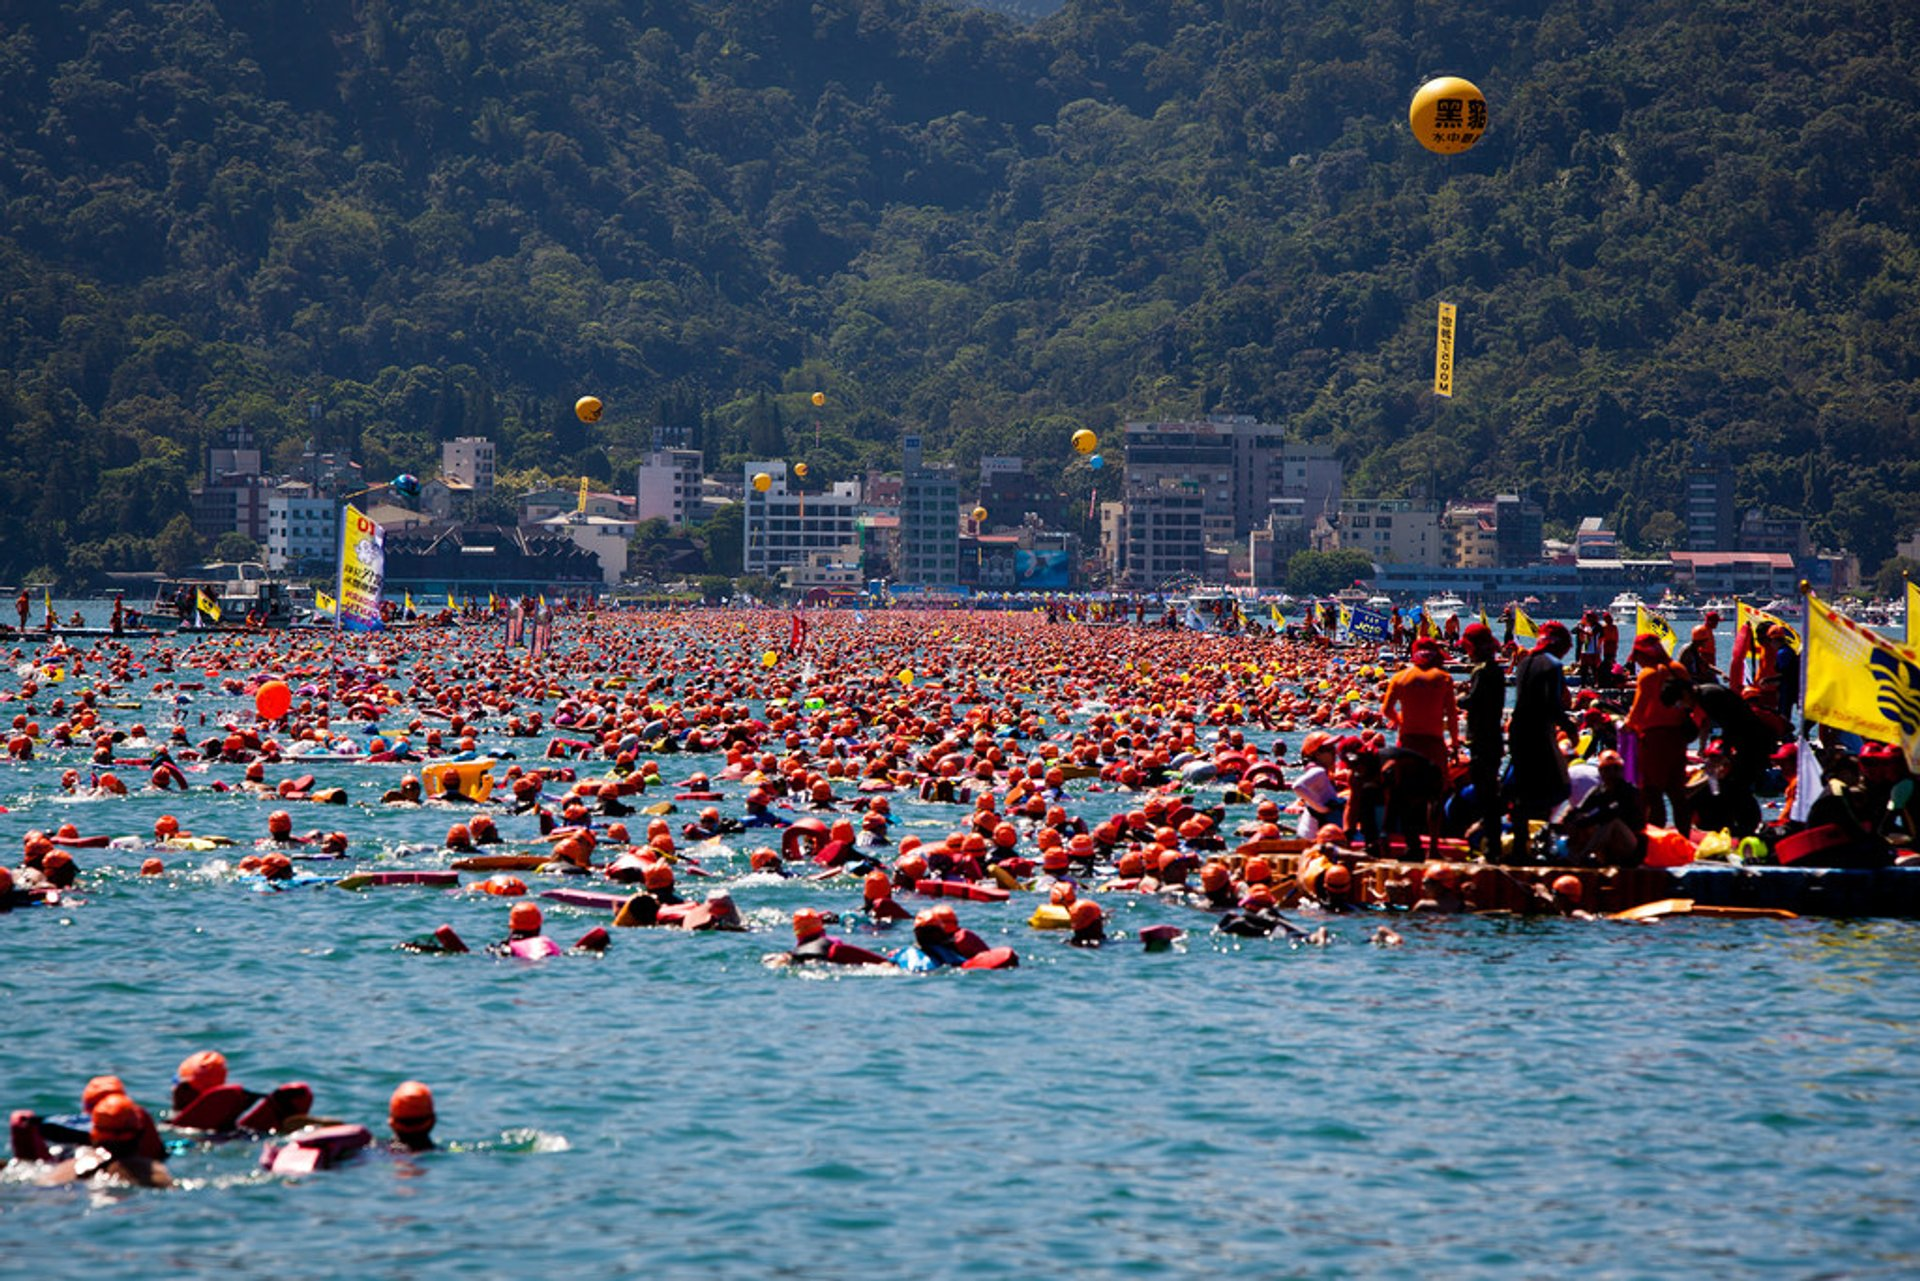 Sun Moon Lake Swimming Carnival in Taiwan - Best Season 2020